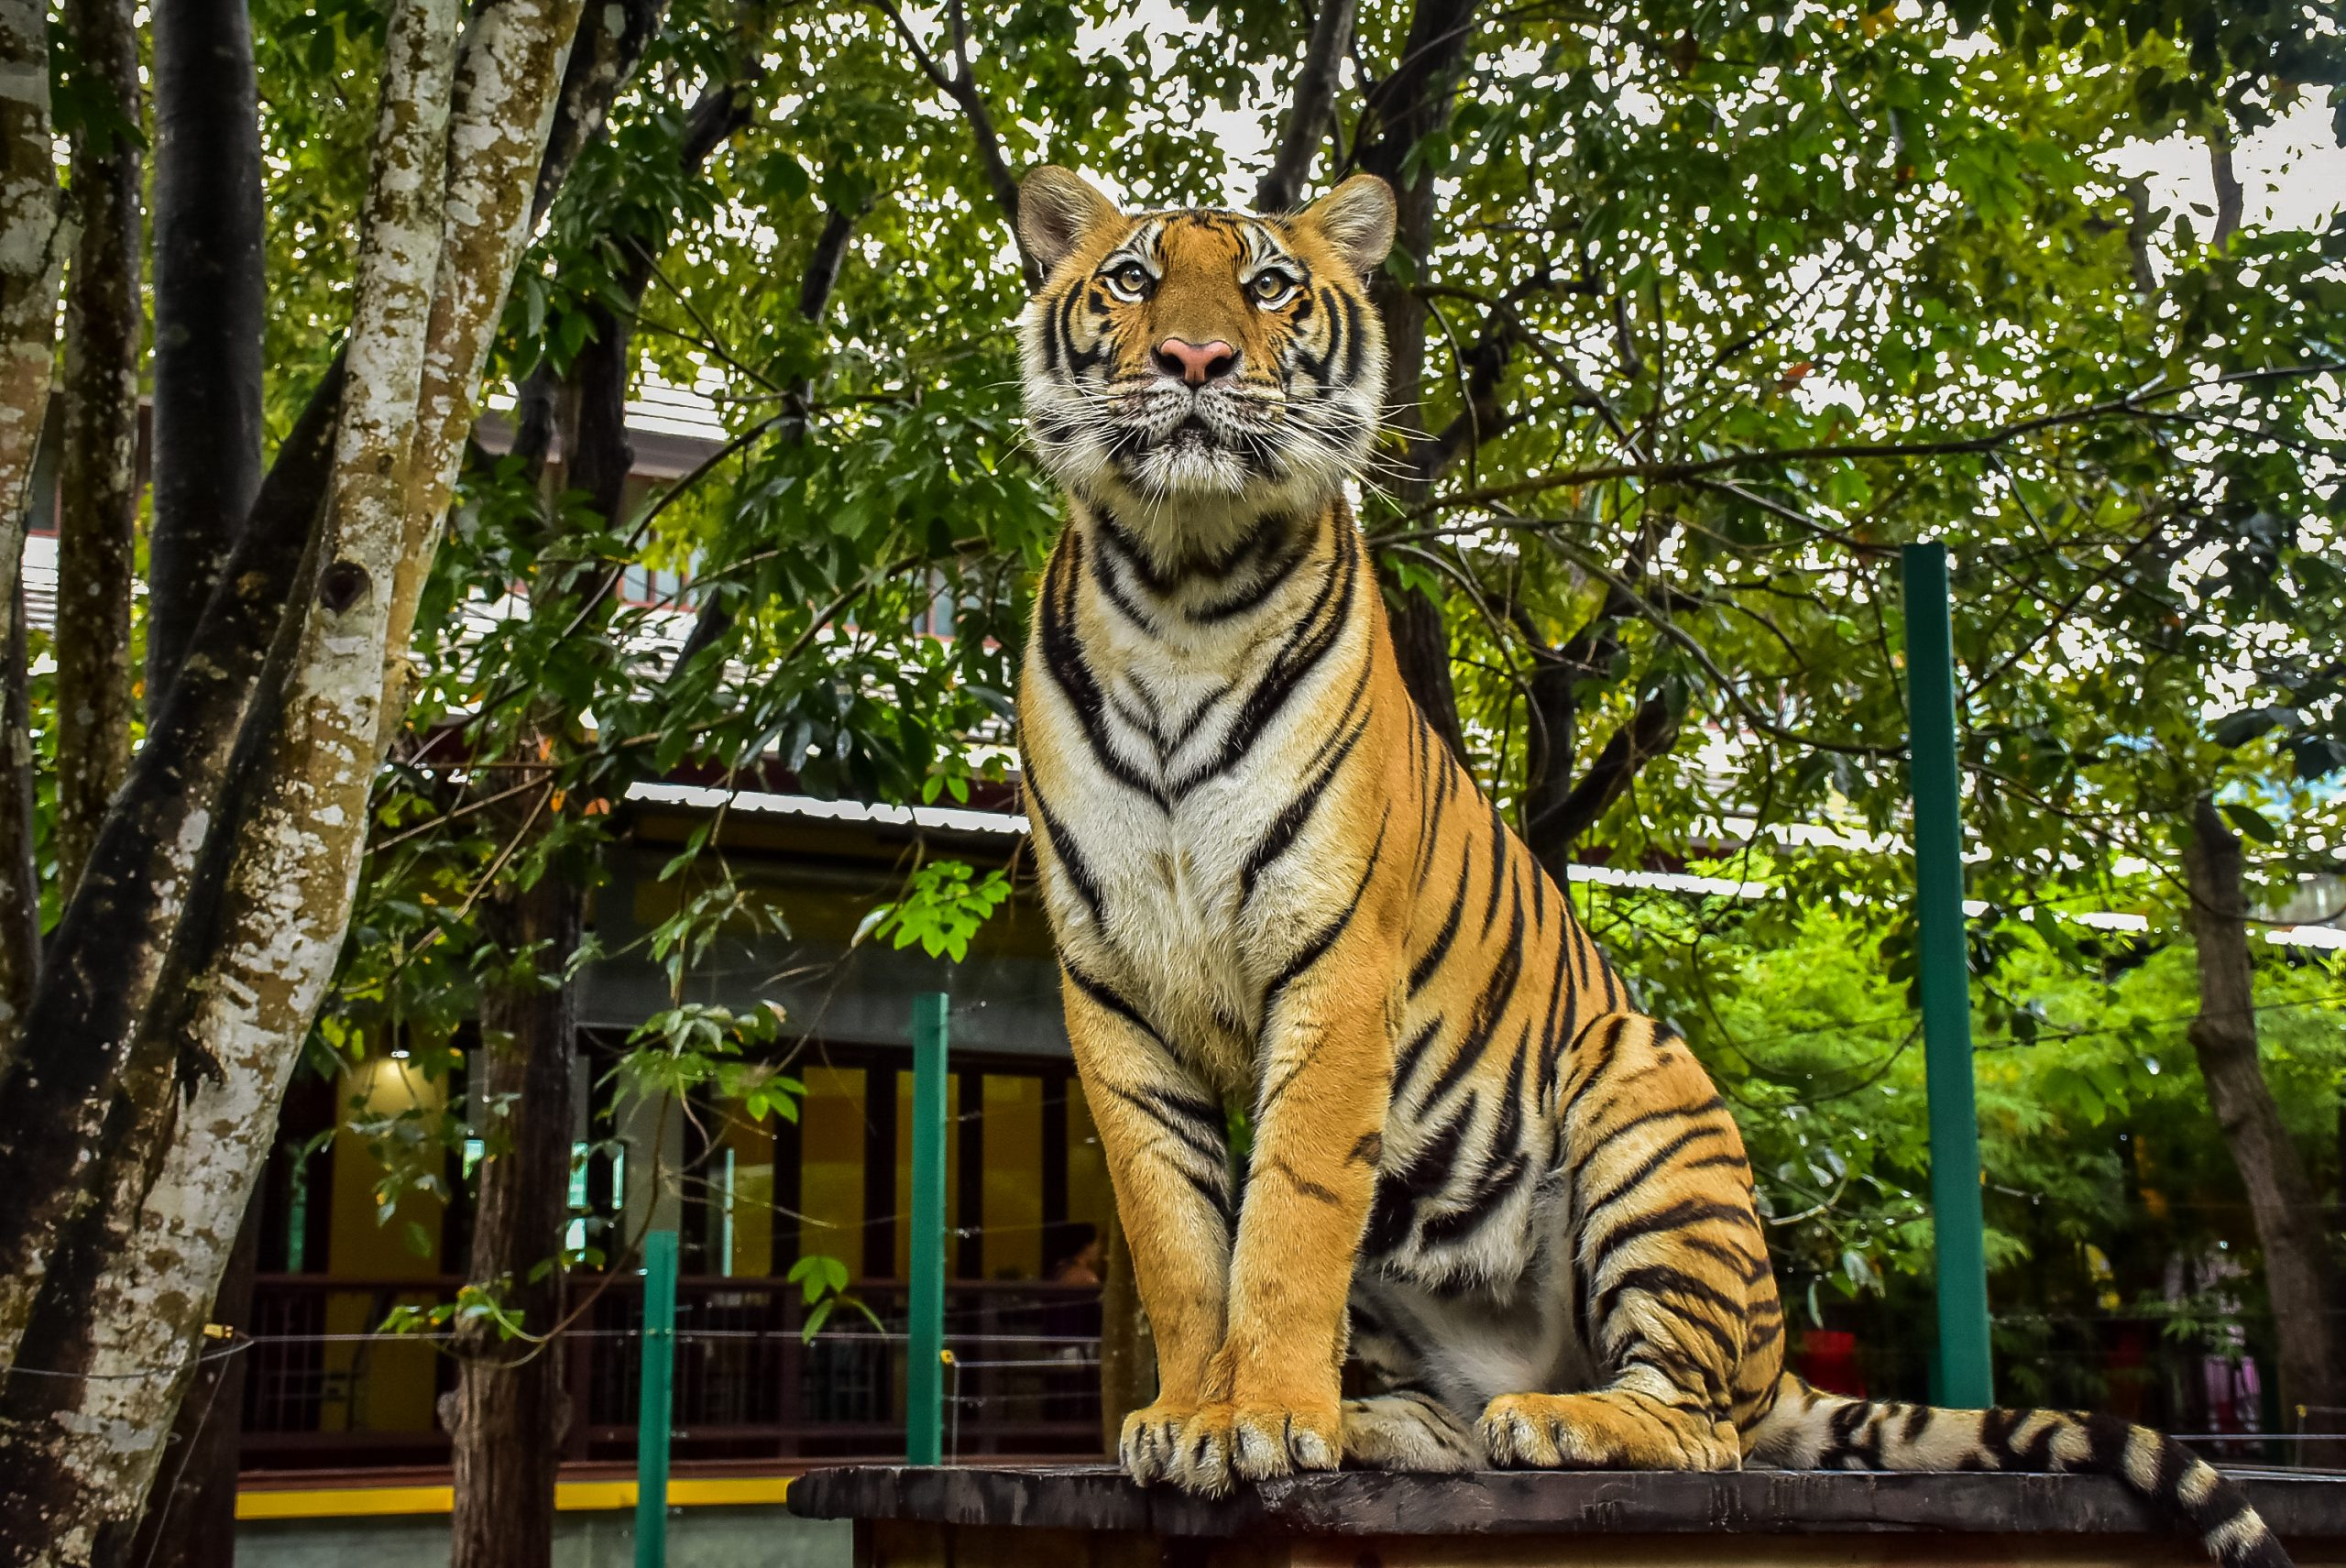 Tiger Kingdom in Phuket, Thailand, is one of the busiest and most popular attractions.